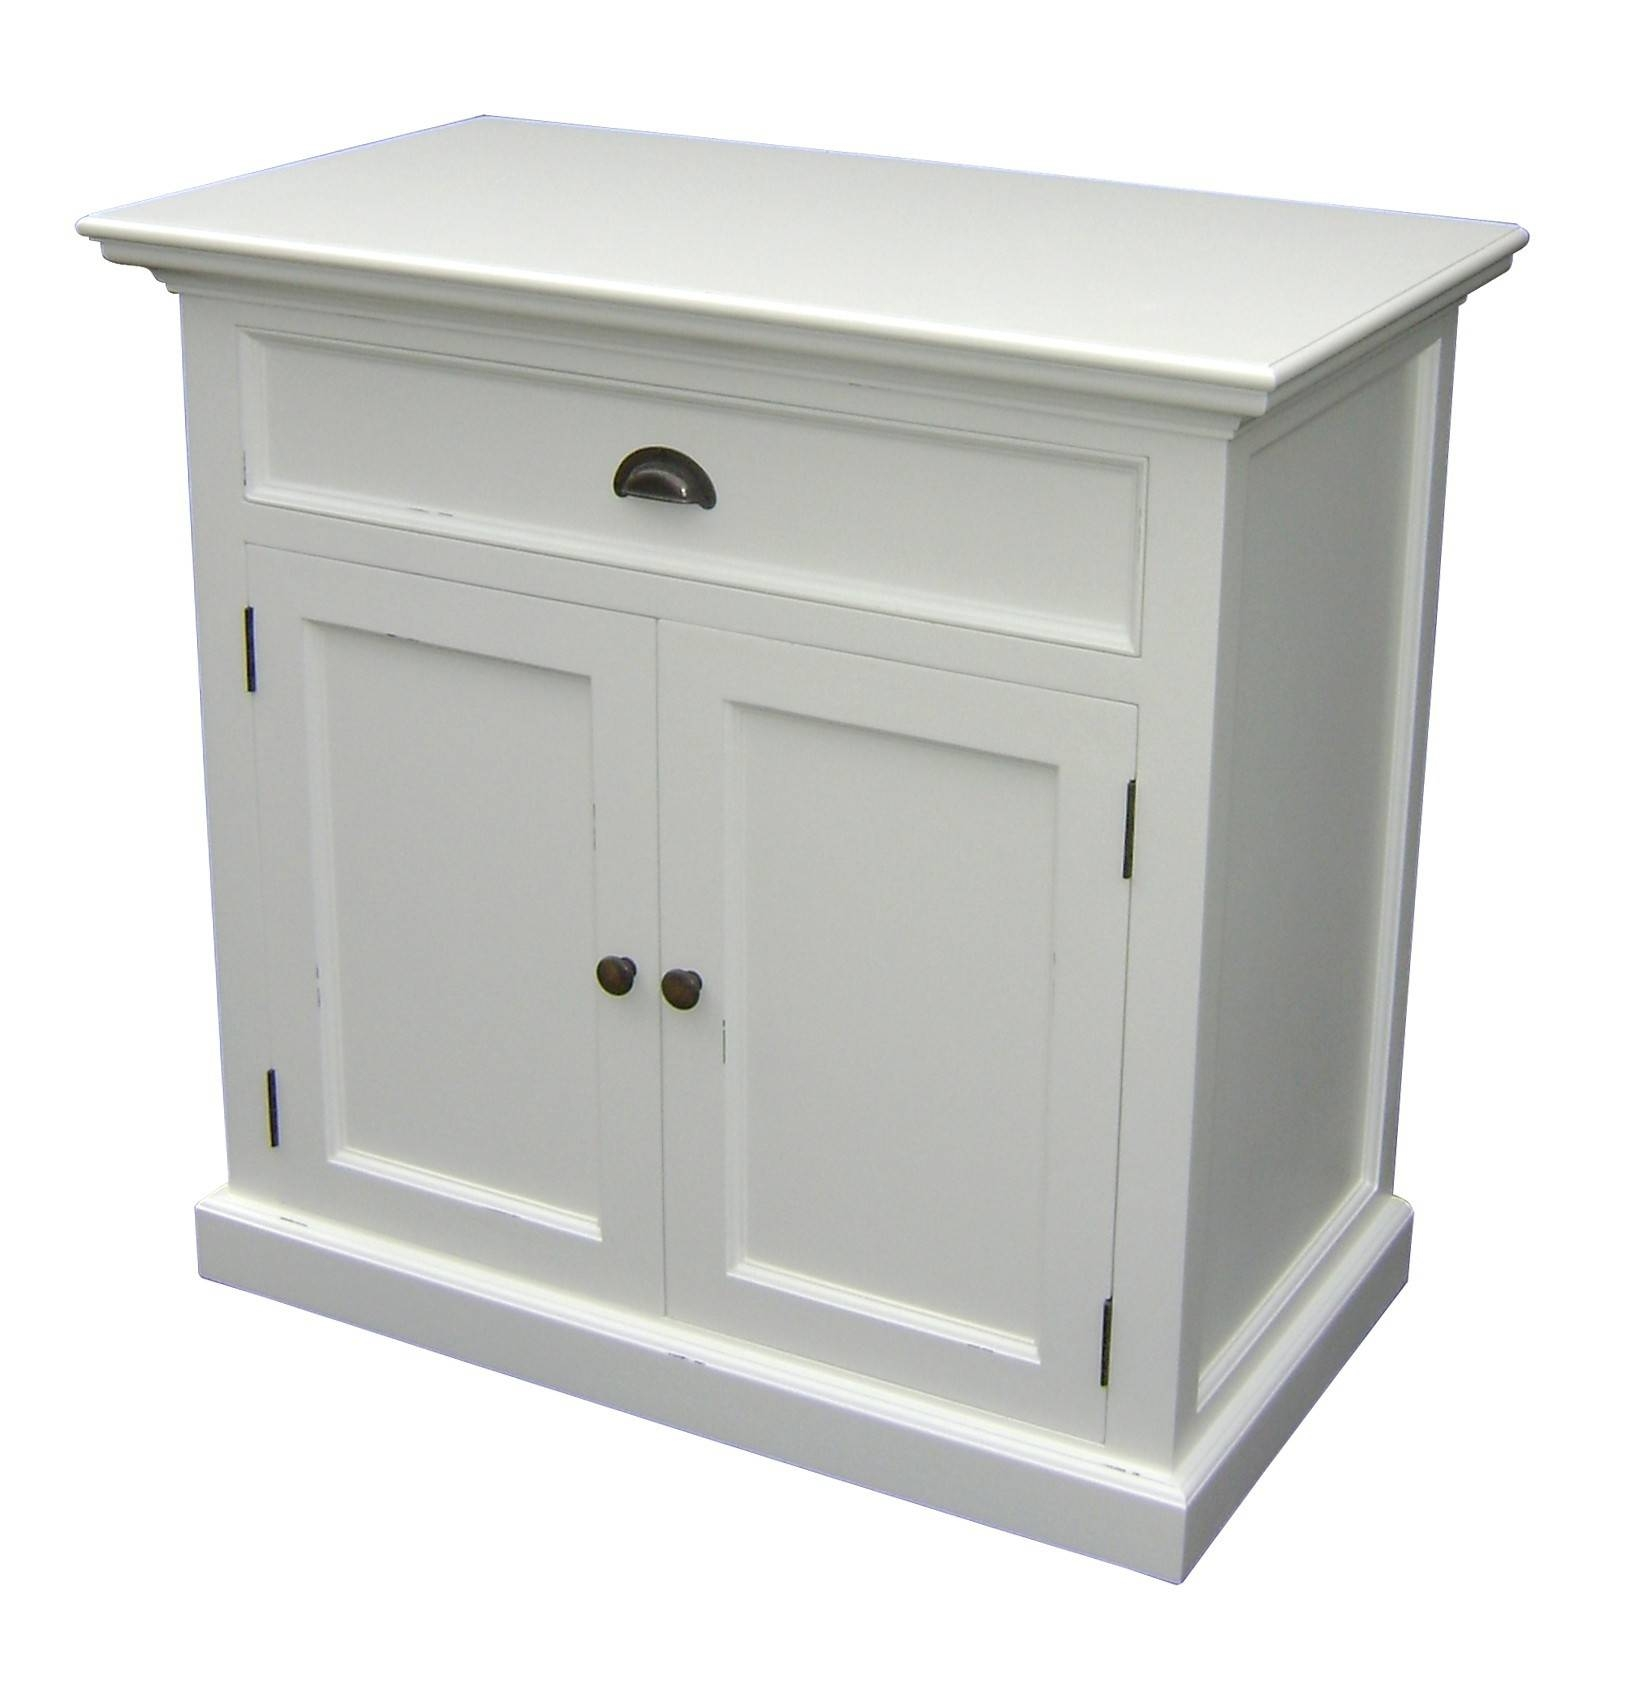 Astonishing Small Dining Room Sideboard Contemporary – 3D House Throughout Small Wooden Sideboards (View 3 of 30)